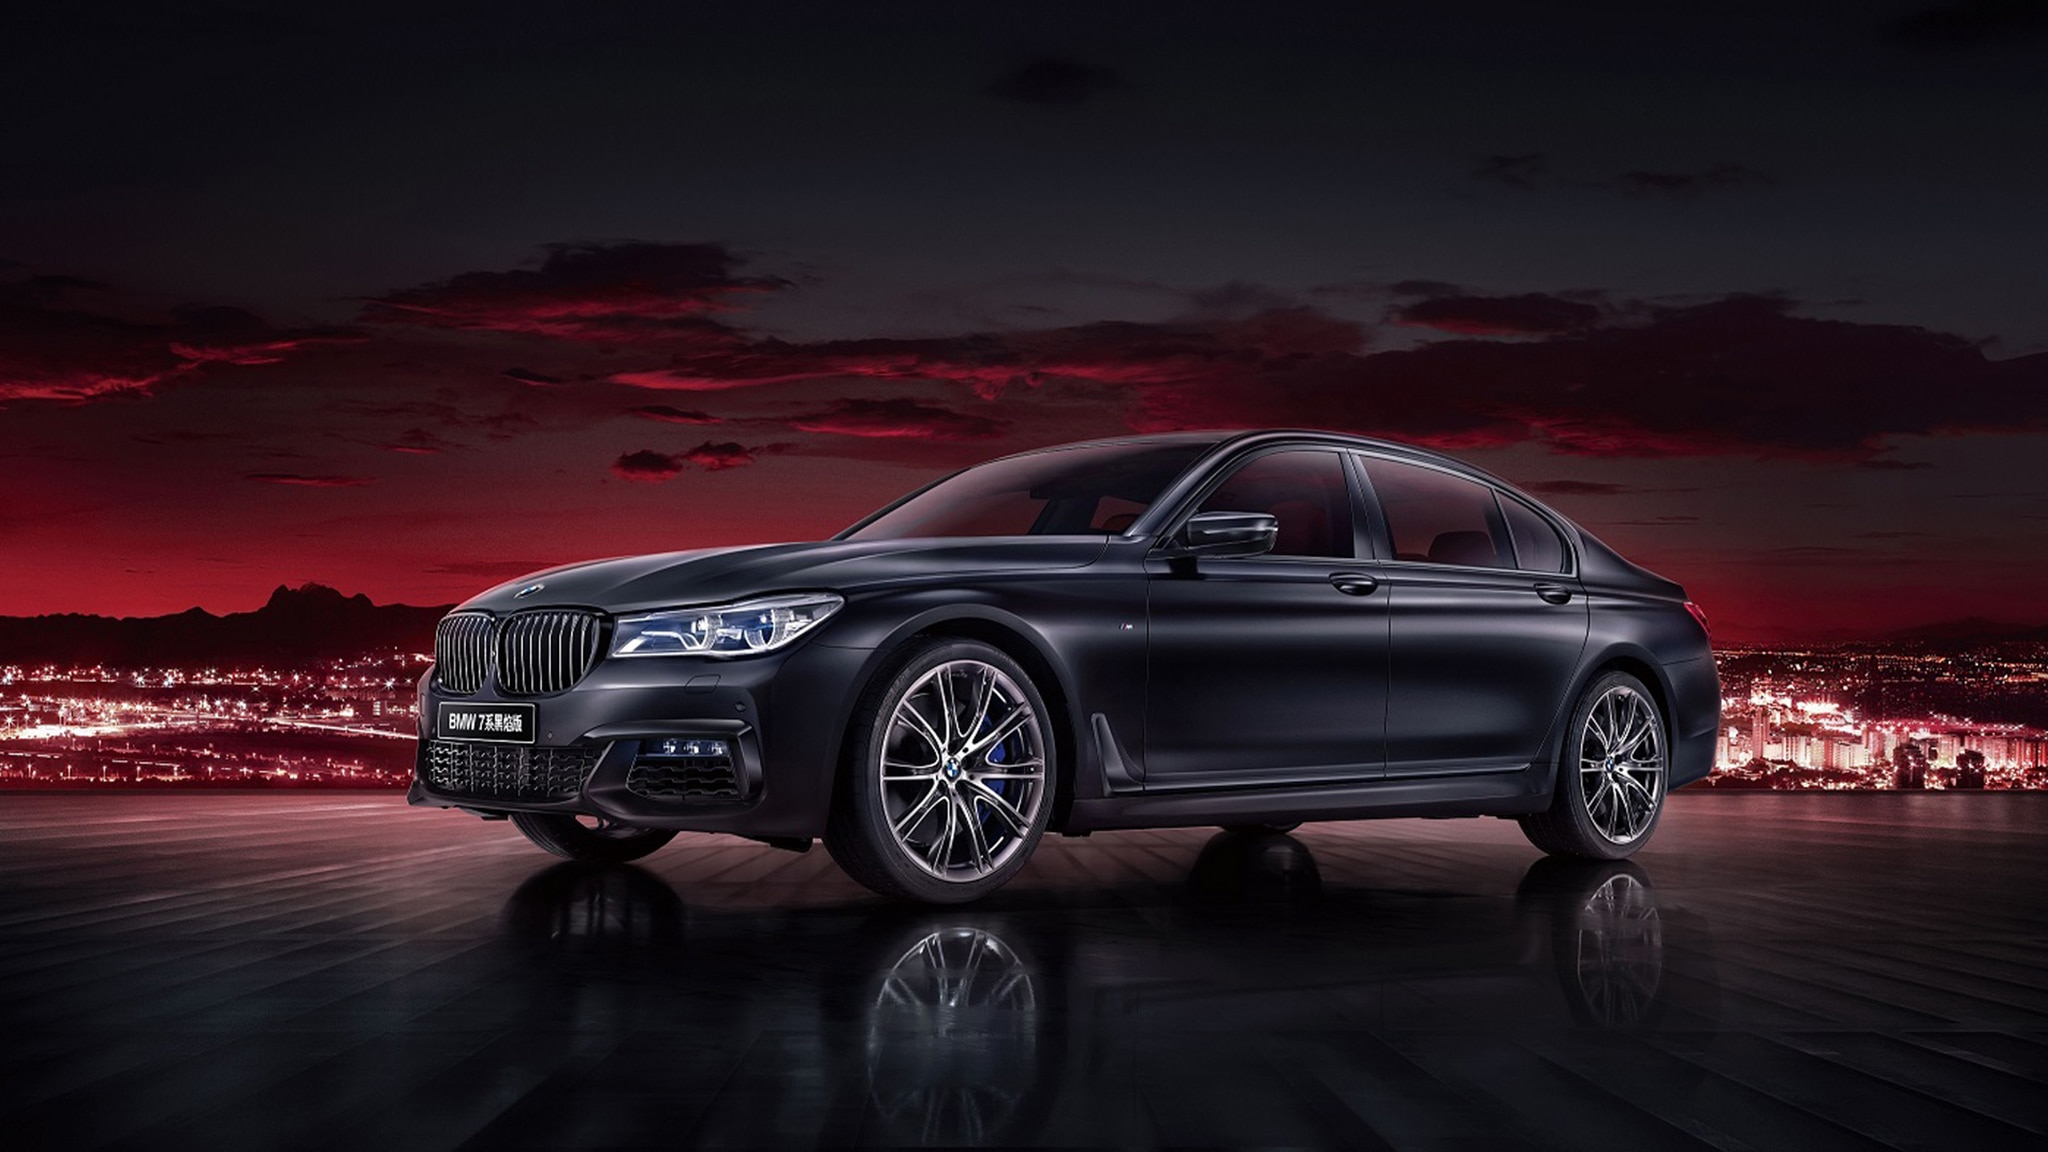 BMW 7 Series Black Flame Edition